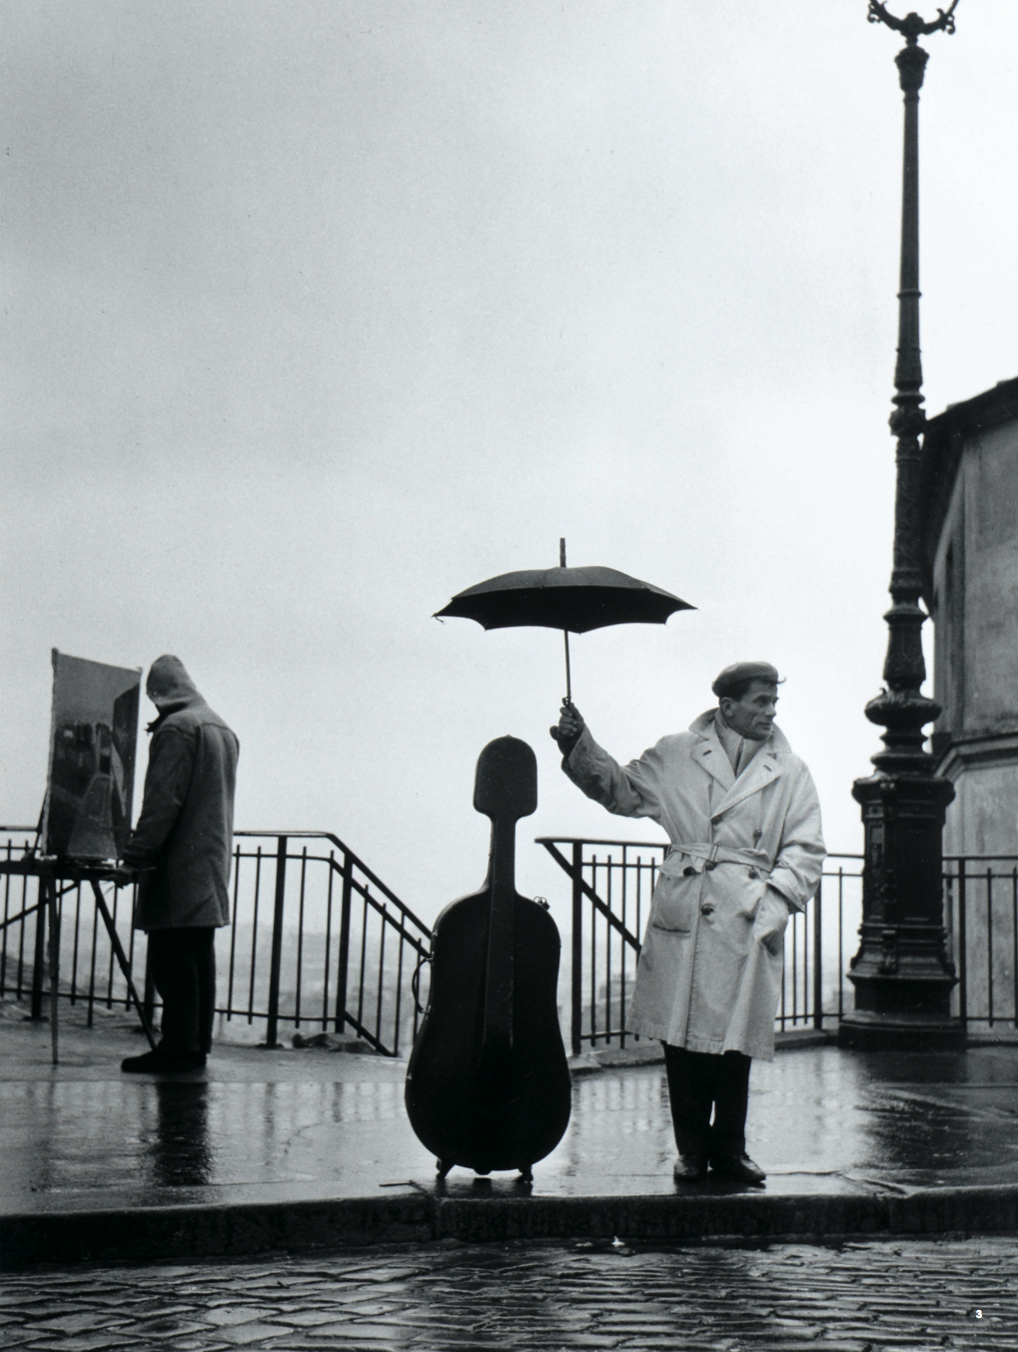 3.'빗속의첼로,파리 (Cello in the Rain, Paris)', gelatin silver print, 40×30cm, 1957